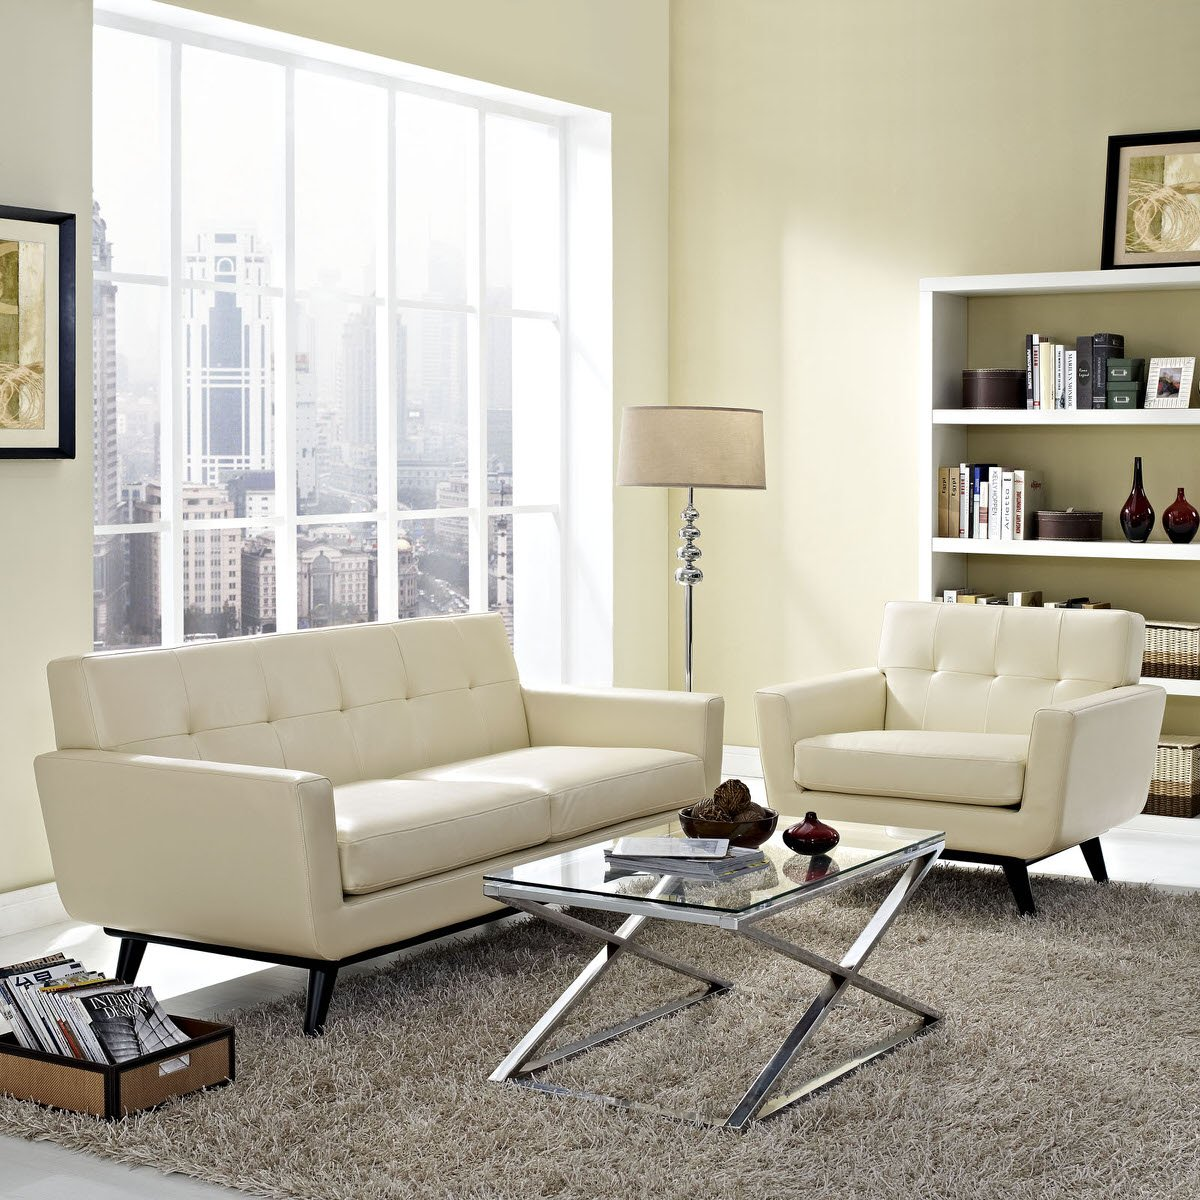 Engage 2 Piece Leather Living Room Set Beige by Modway